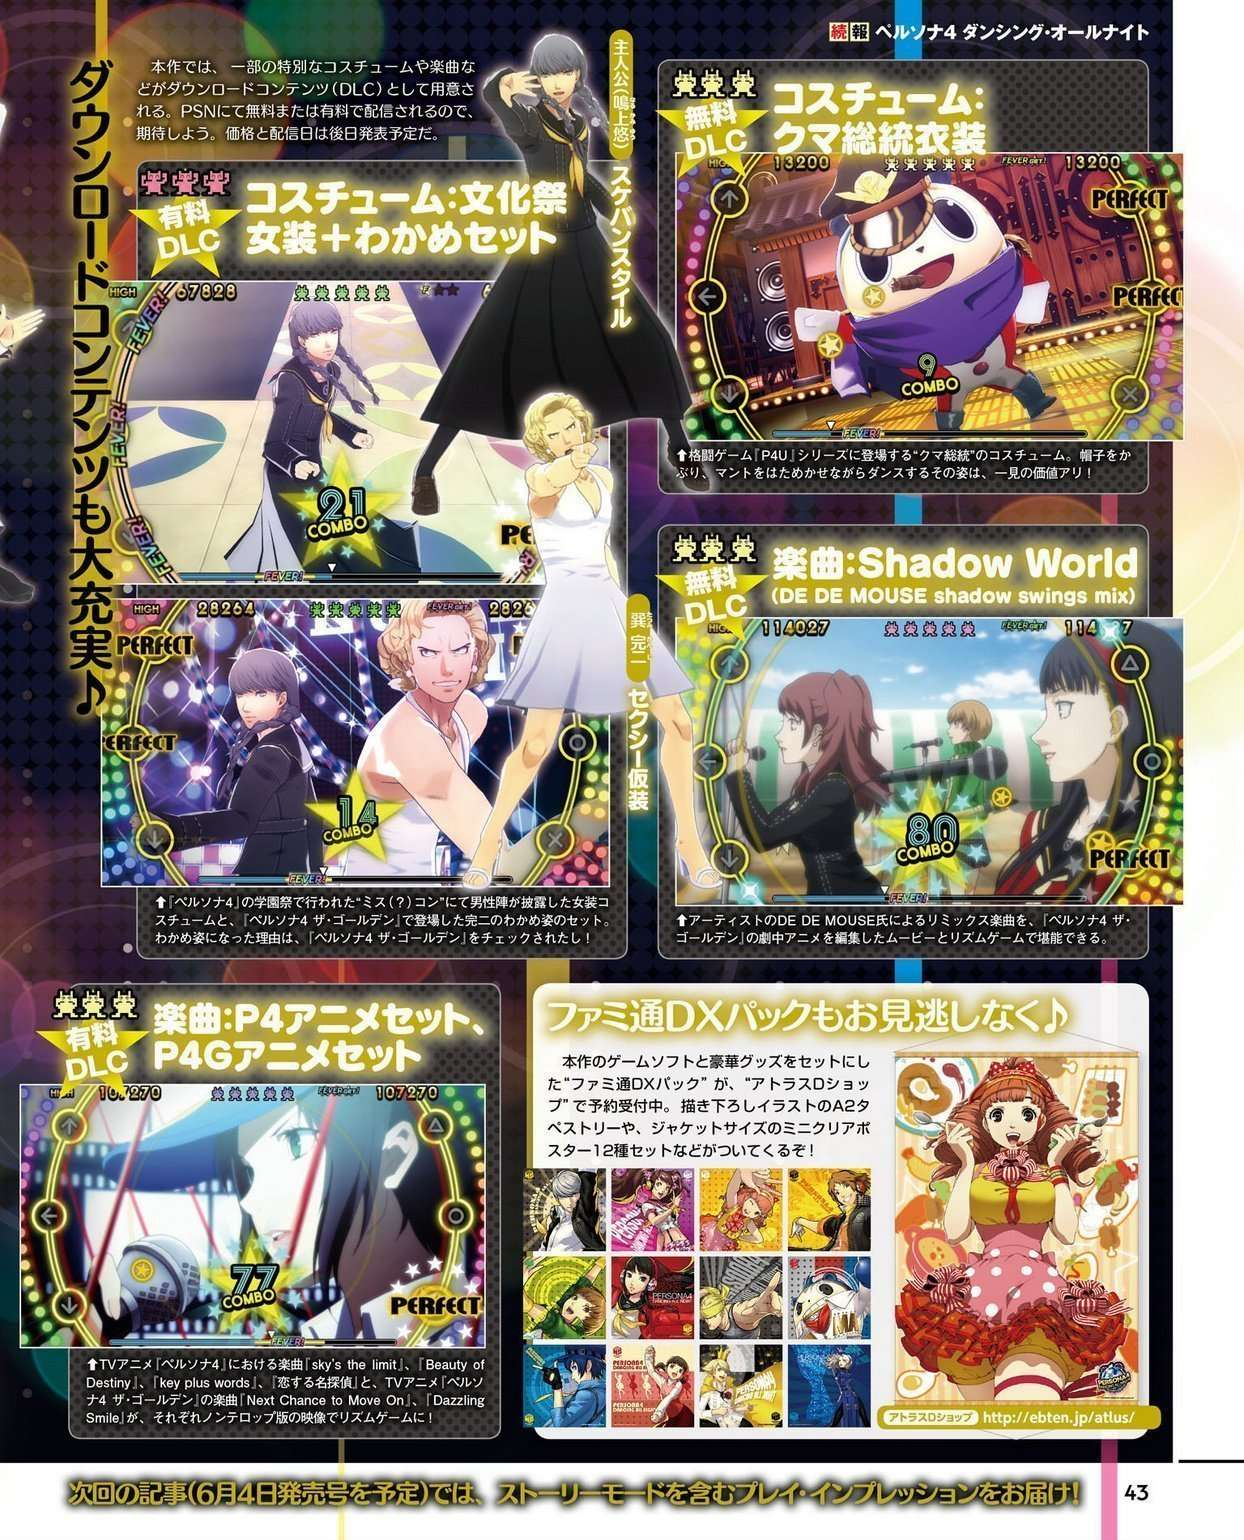 Cross-dressing outfits, the DLC version of Shadow World and Famitsu DX Pack posters for P4D from Famitsu scans.